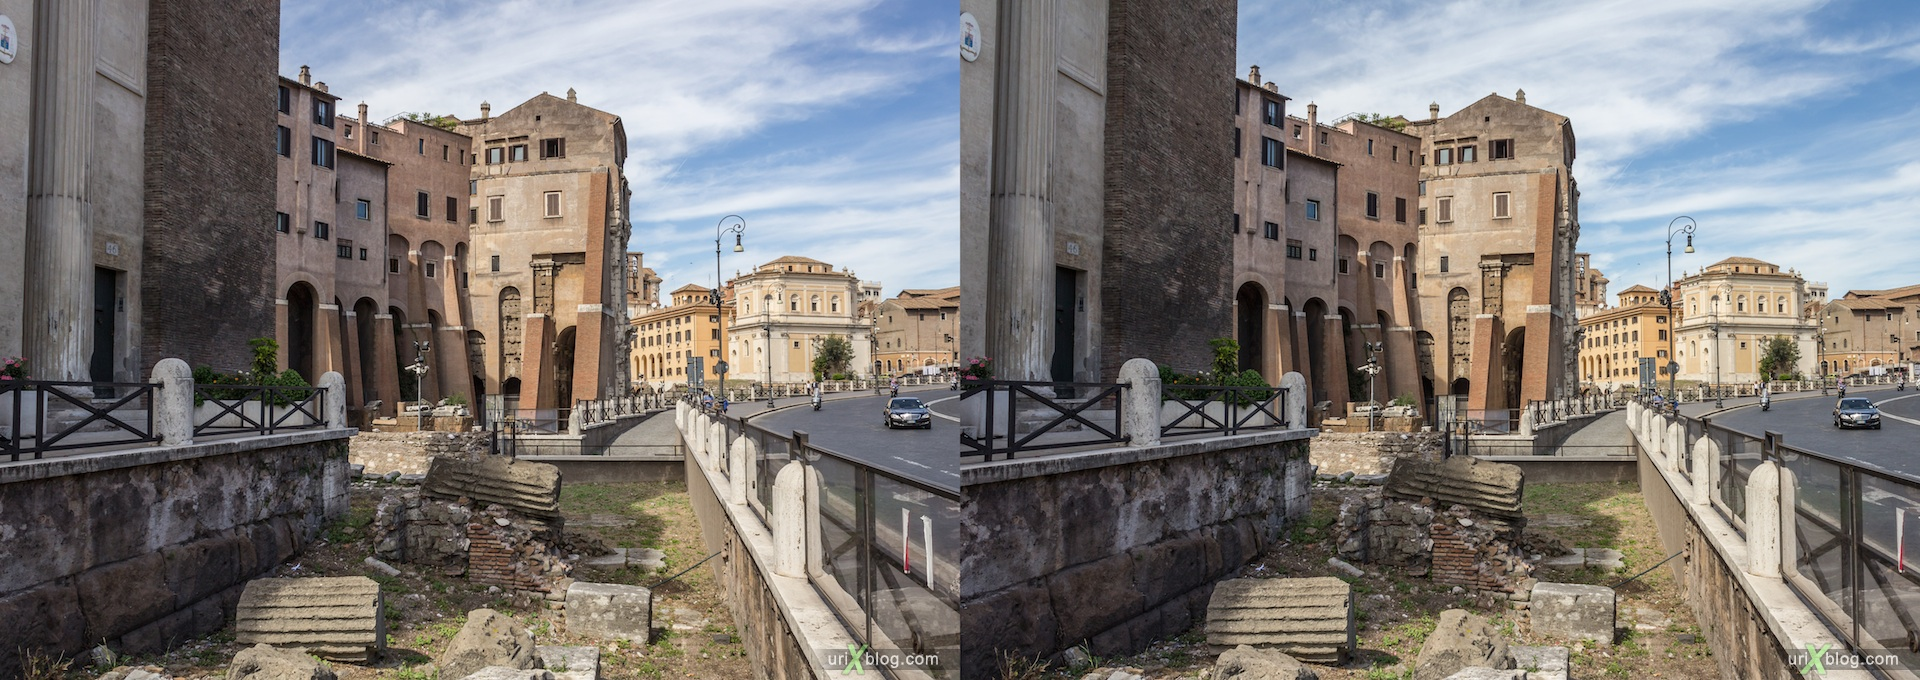 2012, Via del Teatro di Marcello, churh of San Nicola in Carcere, Рим, Италия, осень, 3D, перекрёстные стереопары, стерео, стереопара, стереопары